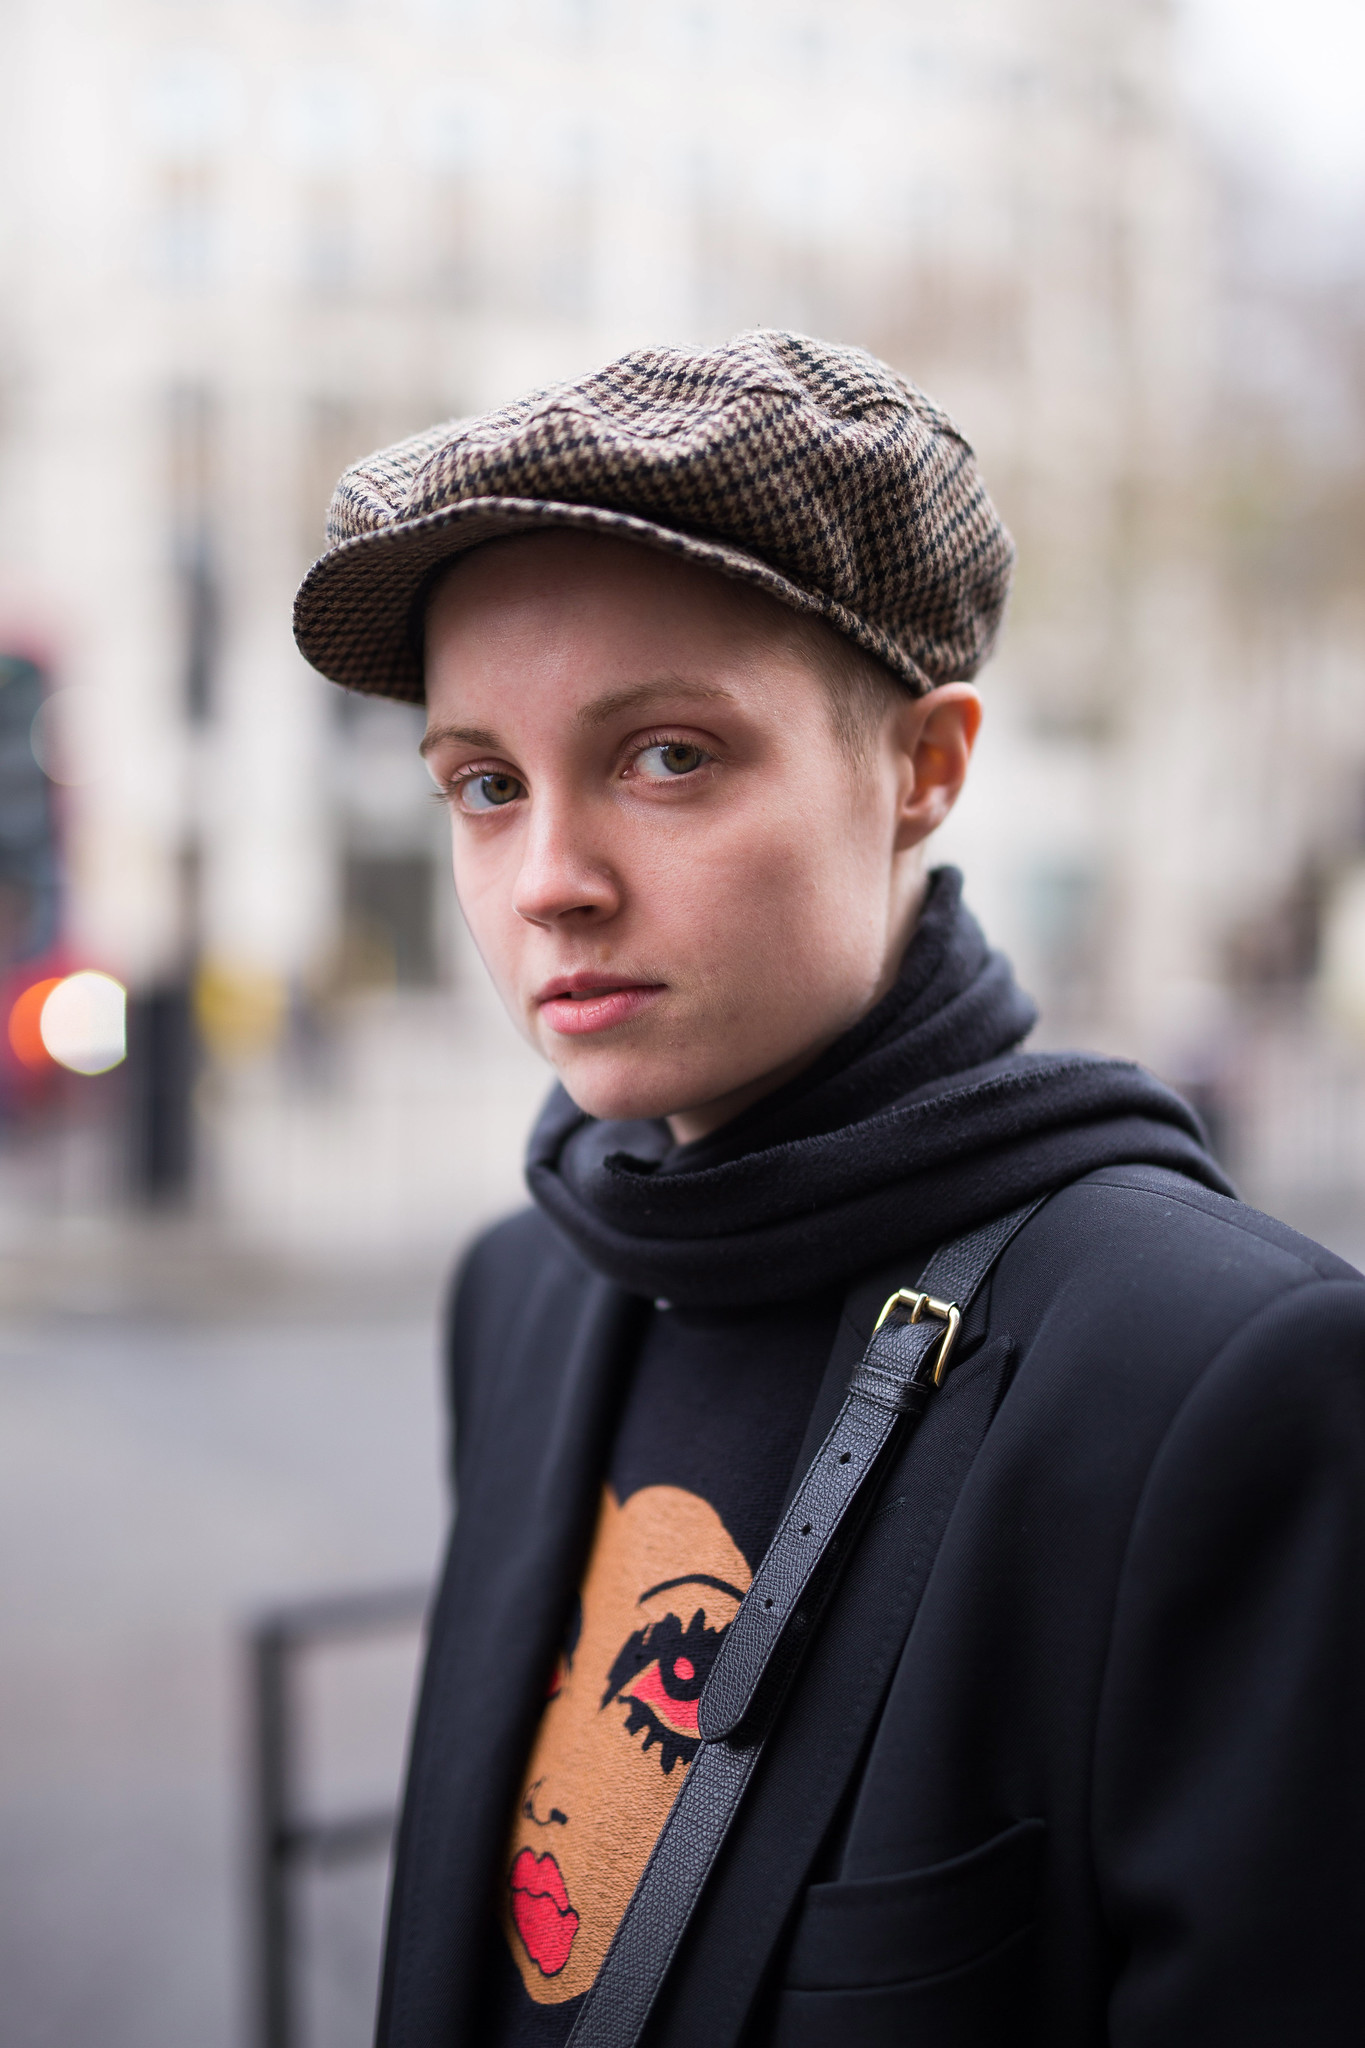 Street Style - Chanie Munn, London Collections: Men